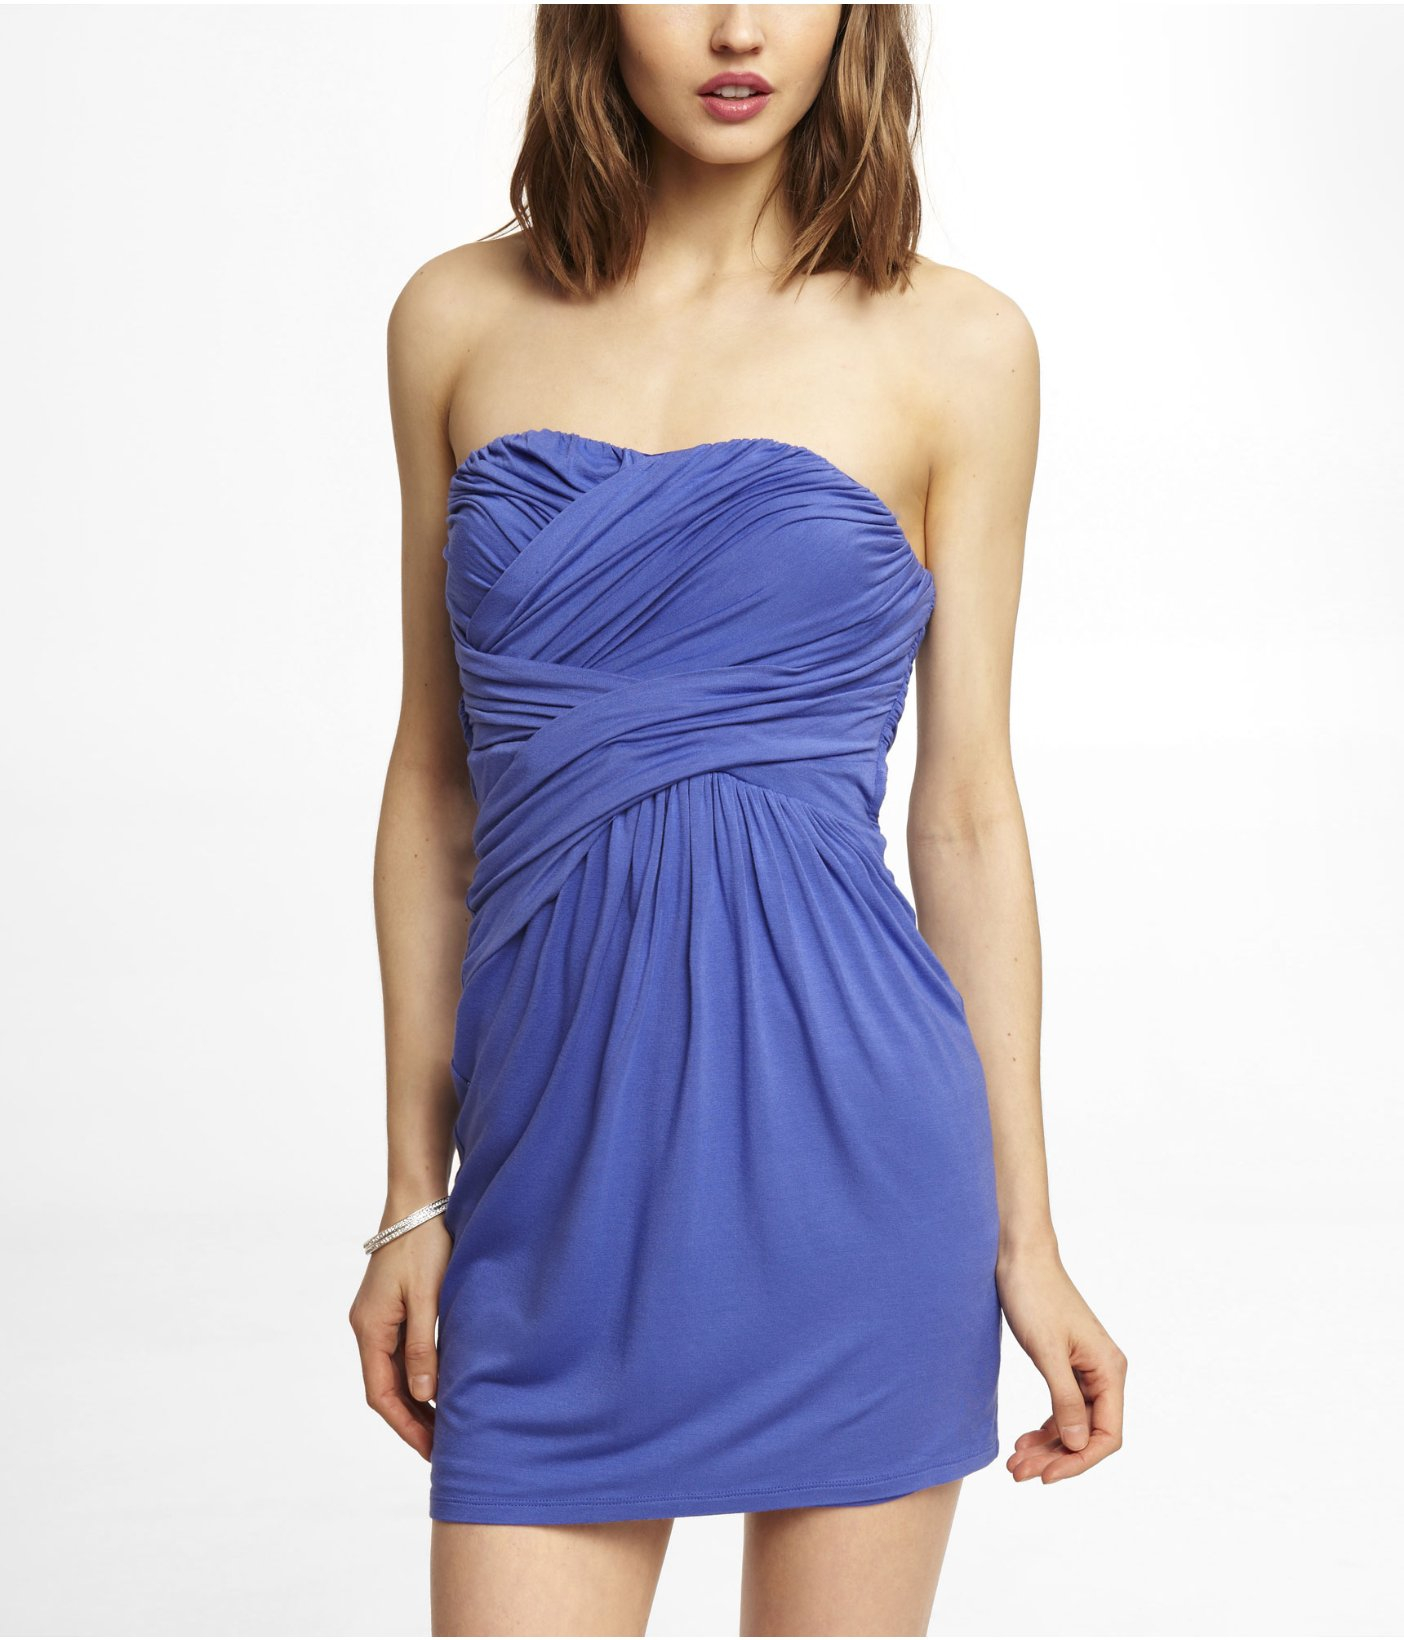 Express Ruched Knit Strapless Dress in Blue   Lyst